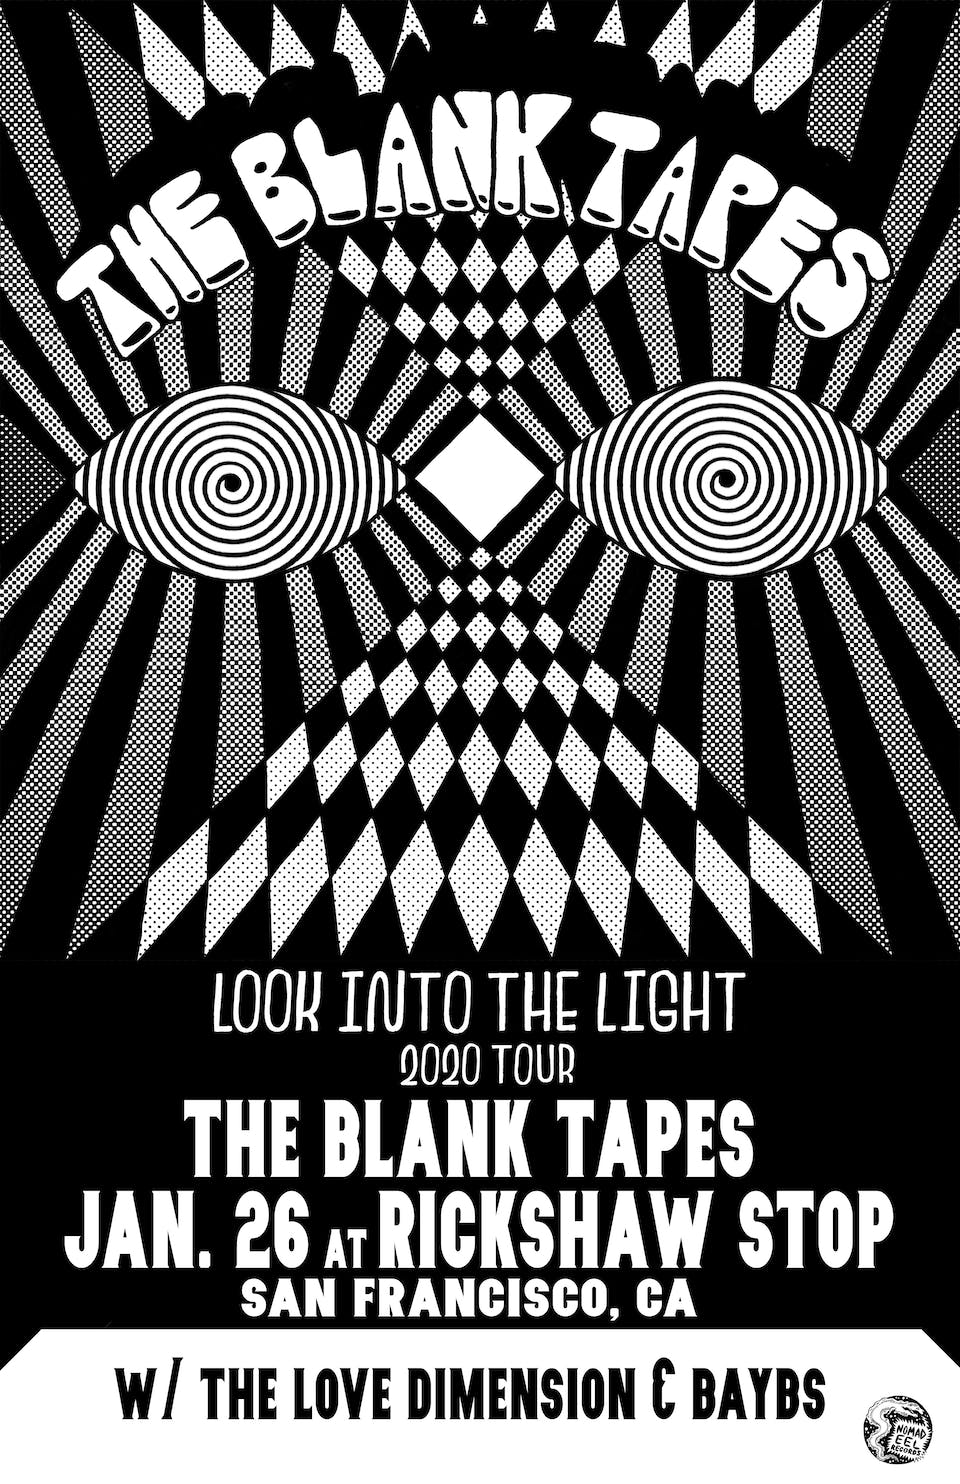 THE BLANK TAPES with The Love Dimension and Baybs